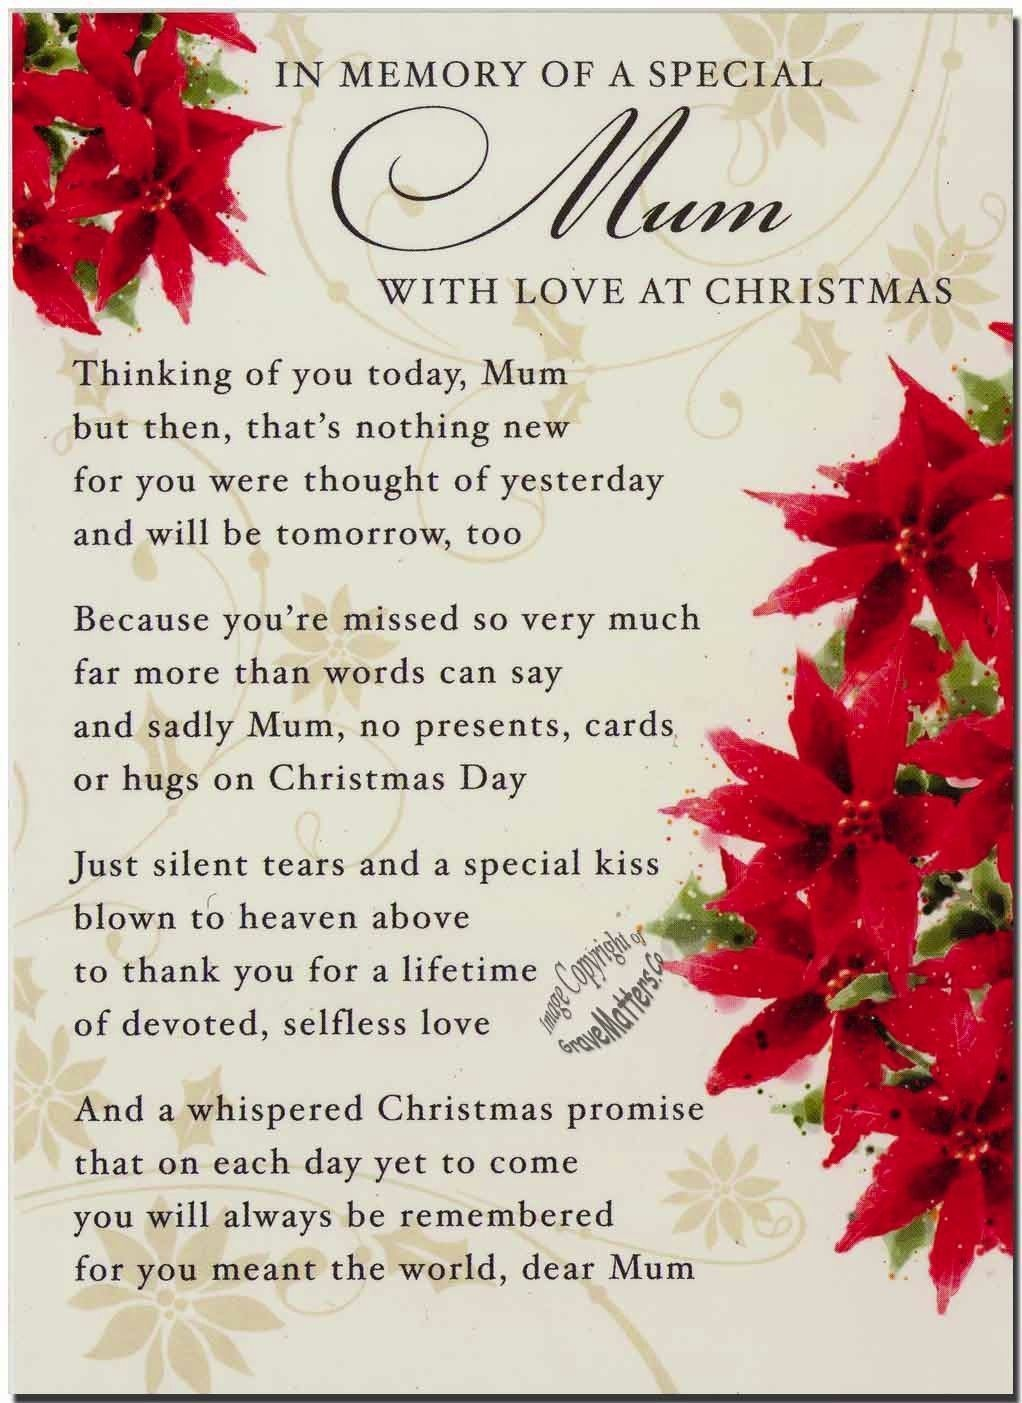 Loving Memories Of A Special Mom On Christmas